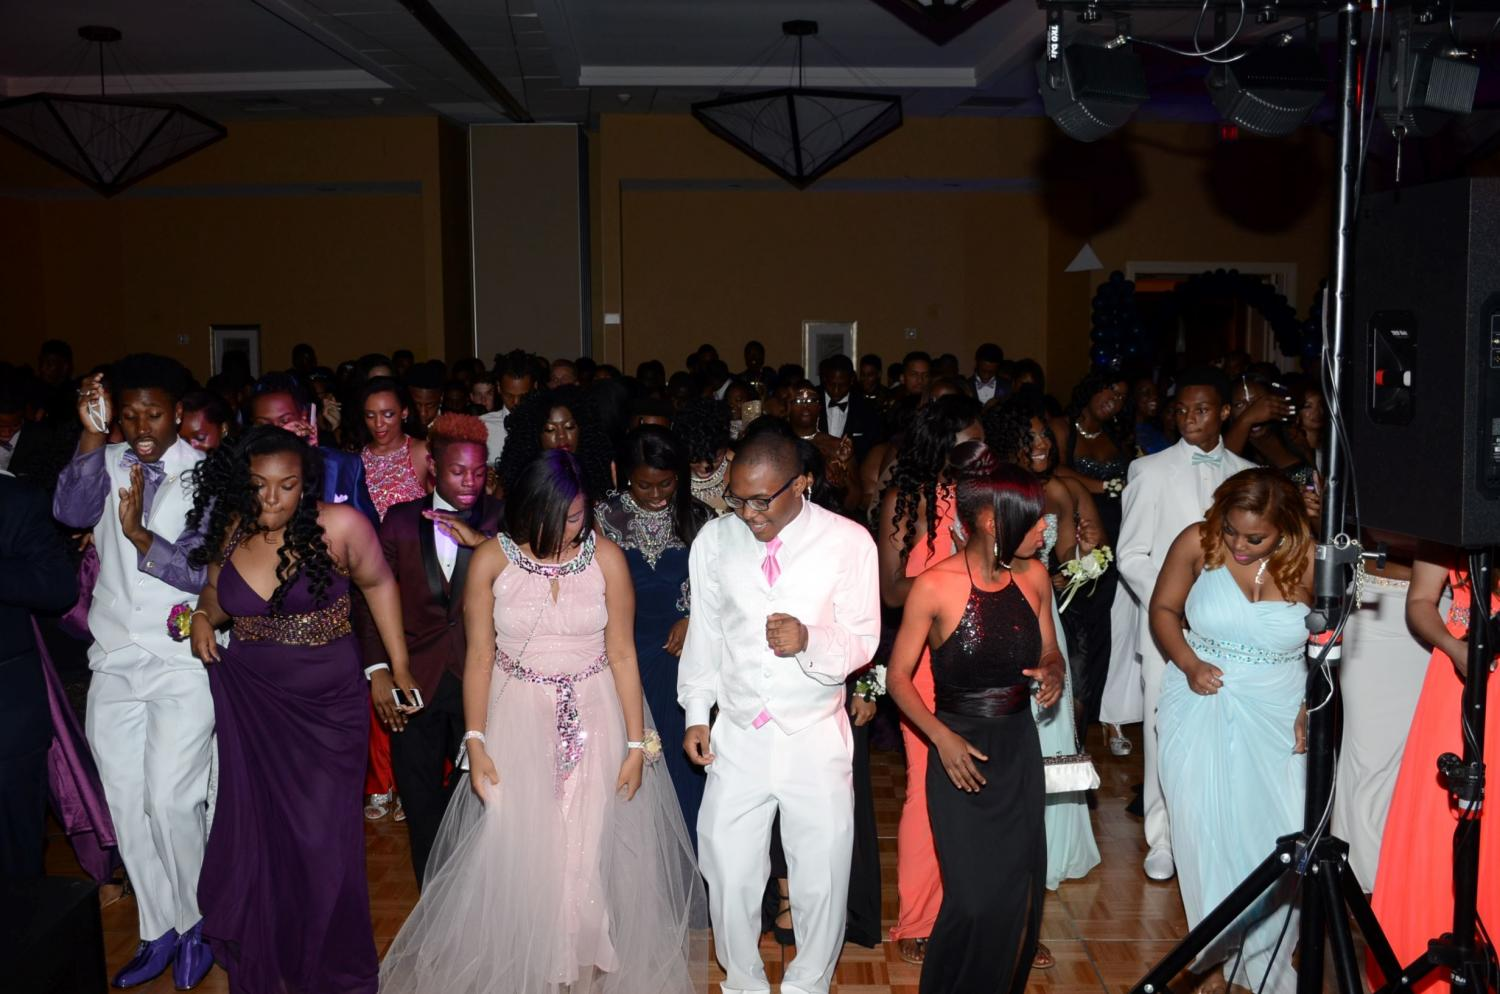 For many Hawks, prom is the culmination of a lot of anticipation and excitement.